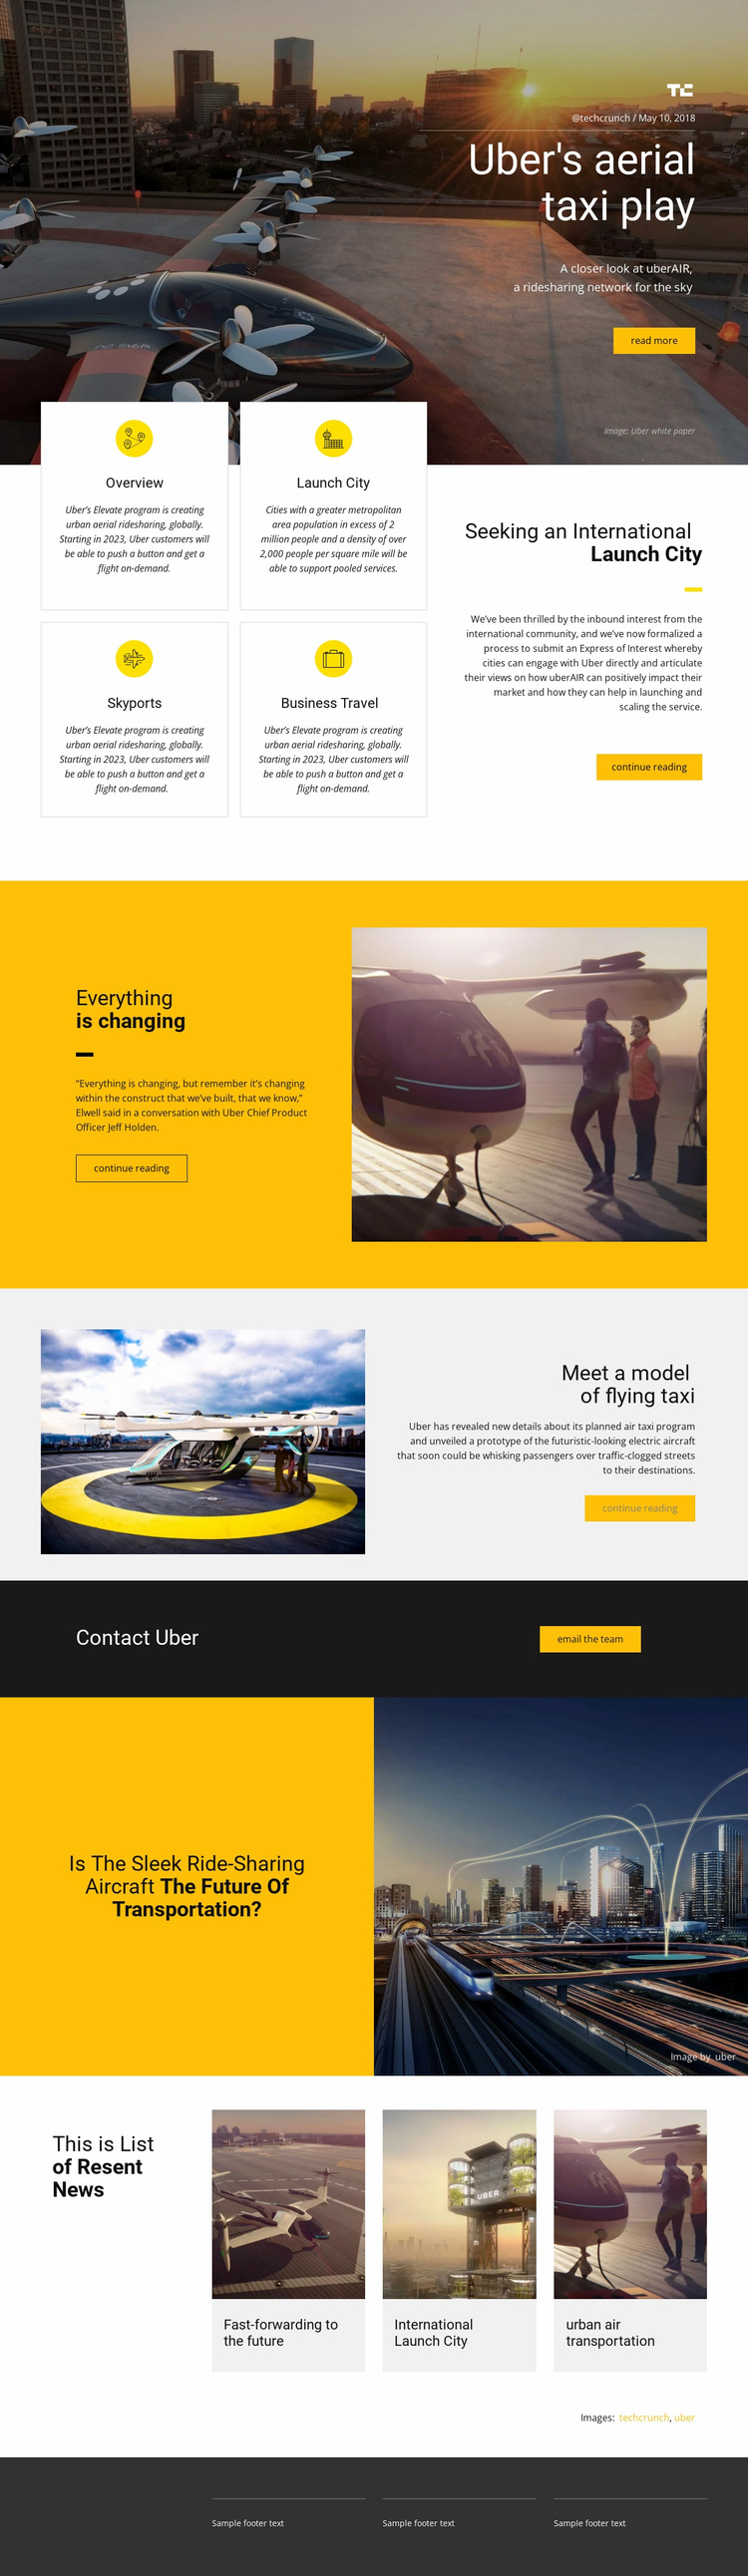 Uber's Aerial Taxi Play Landing Page